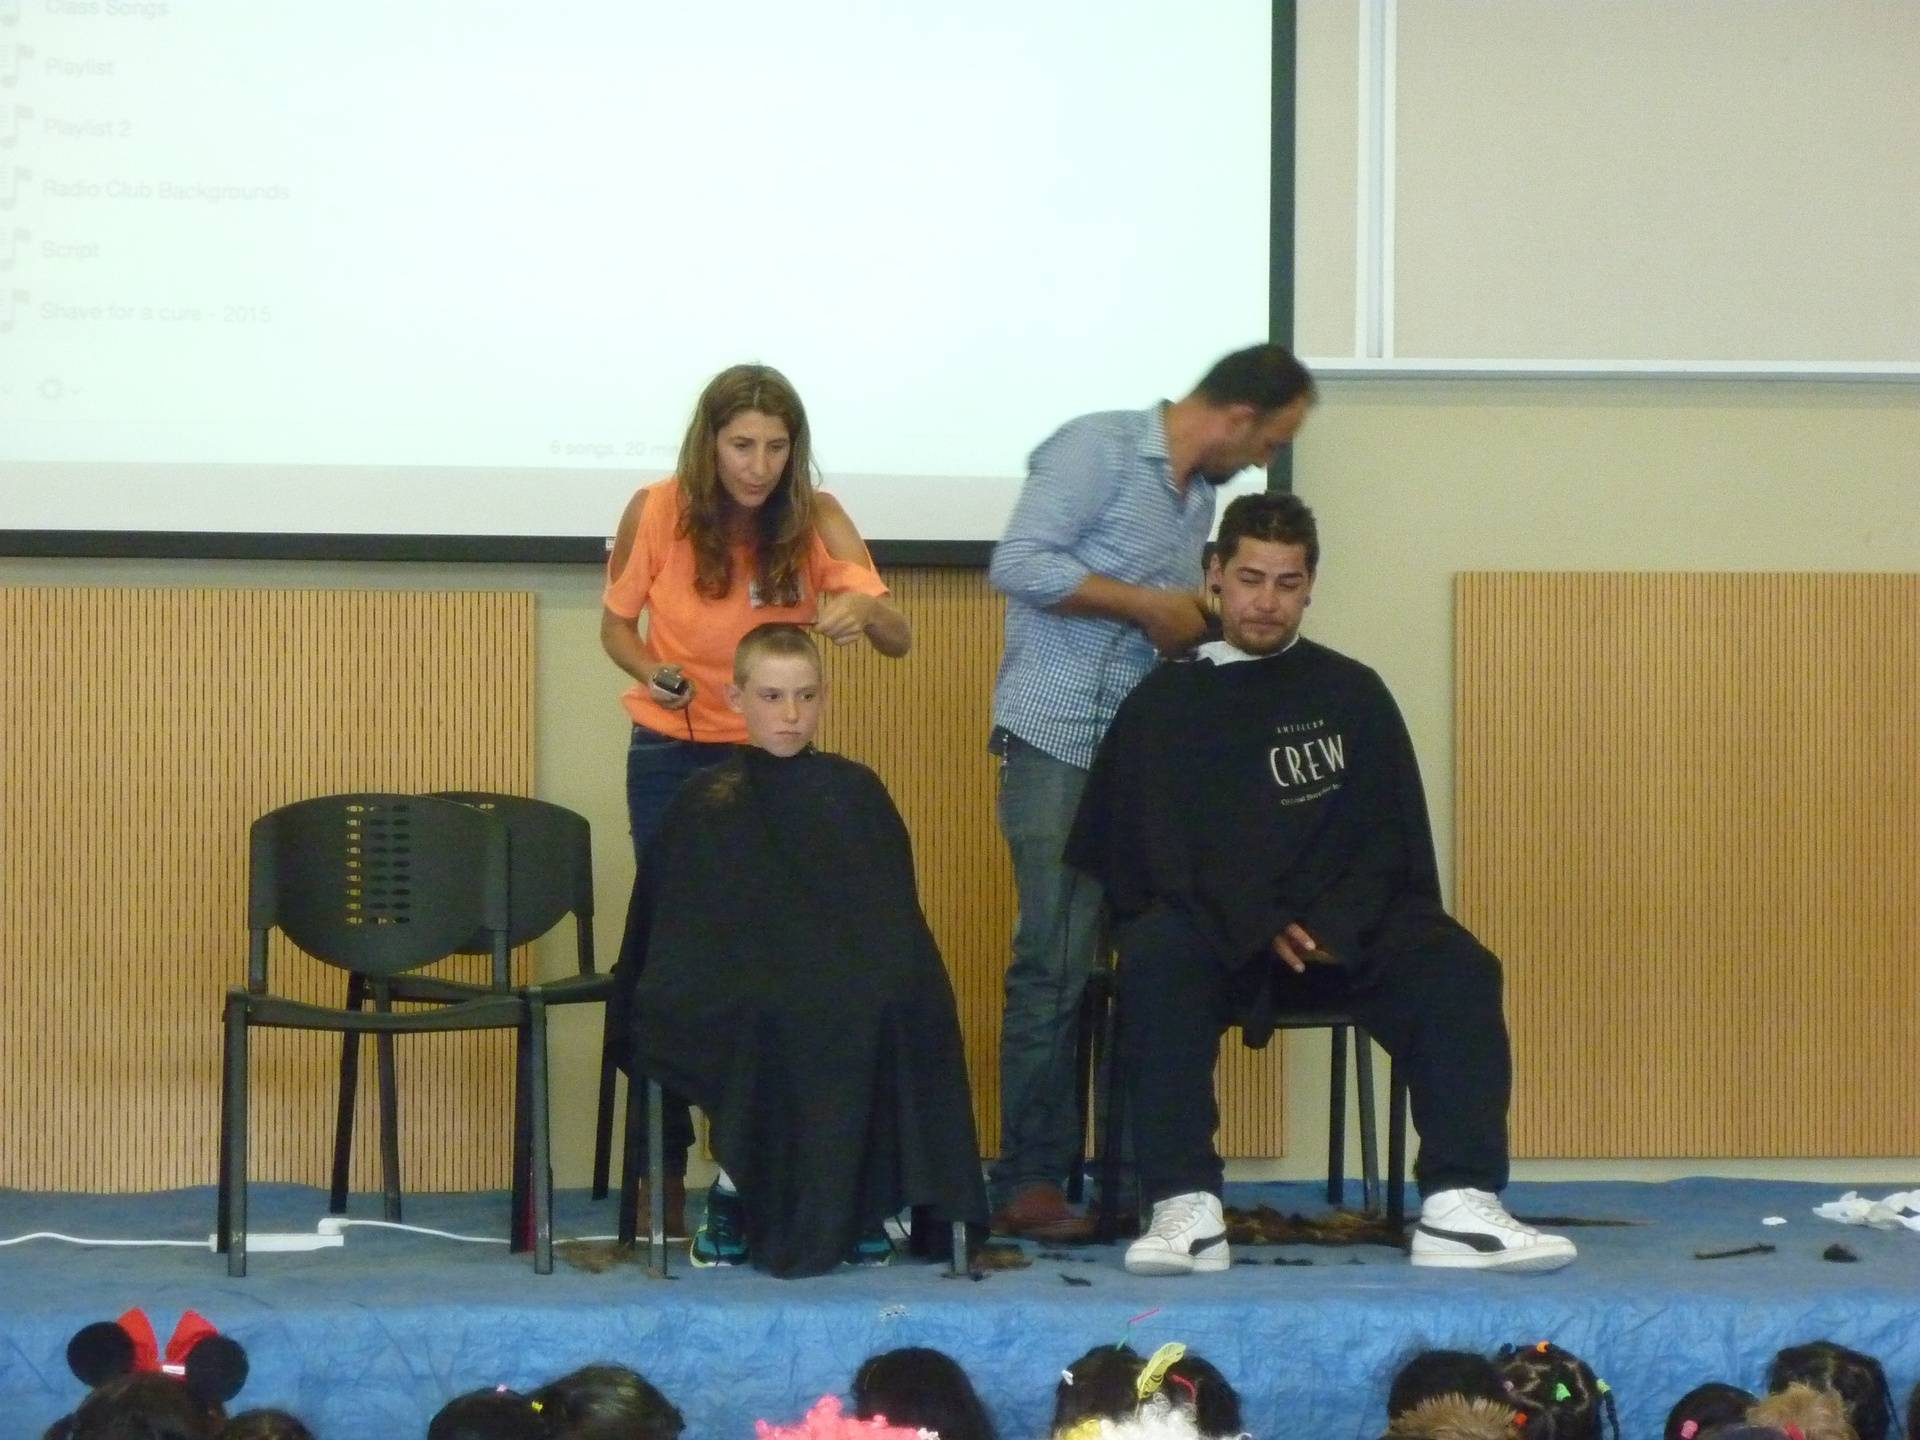 Charity head shave at Mission heights primary school